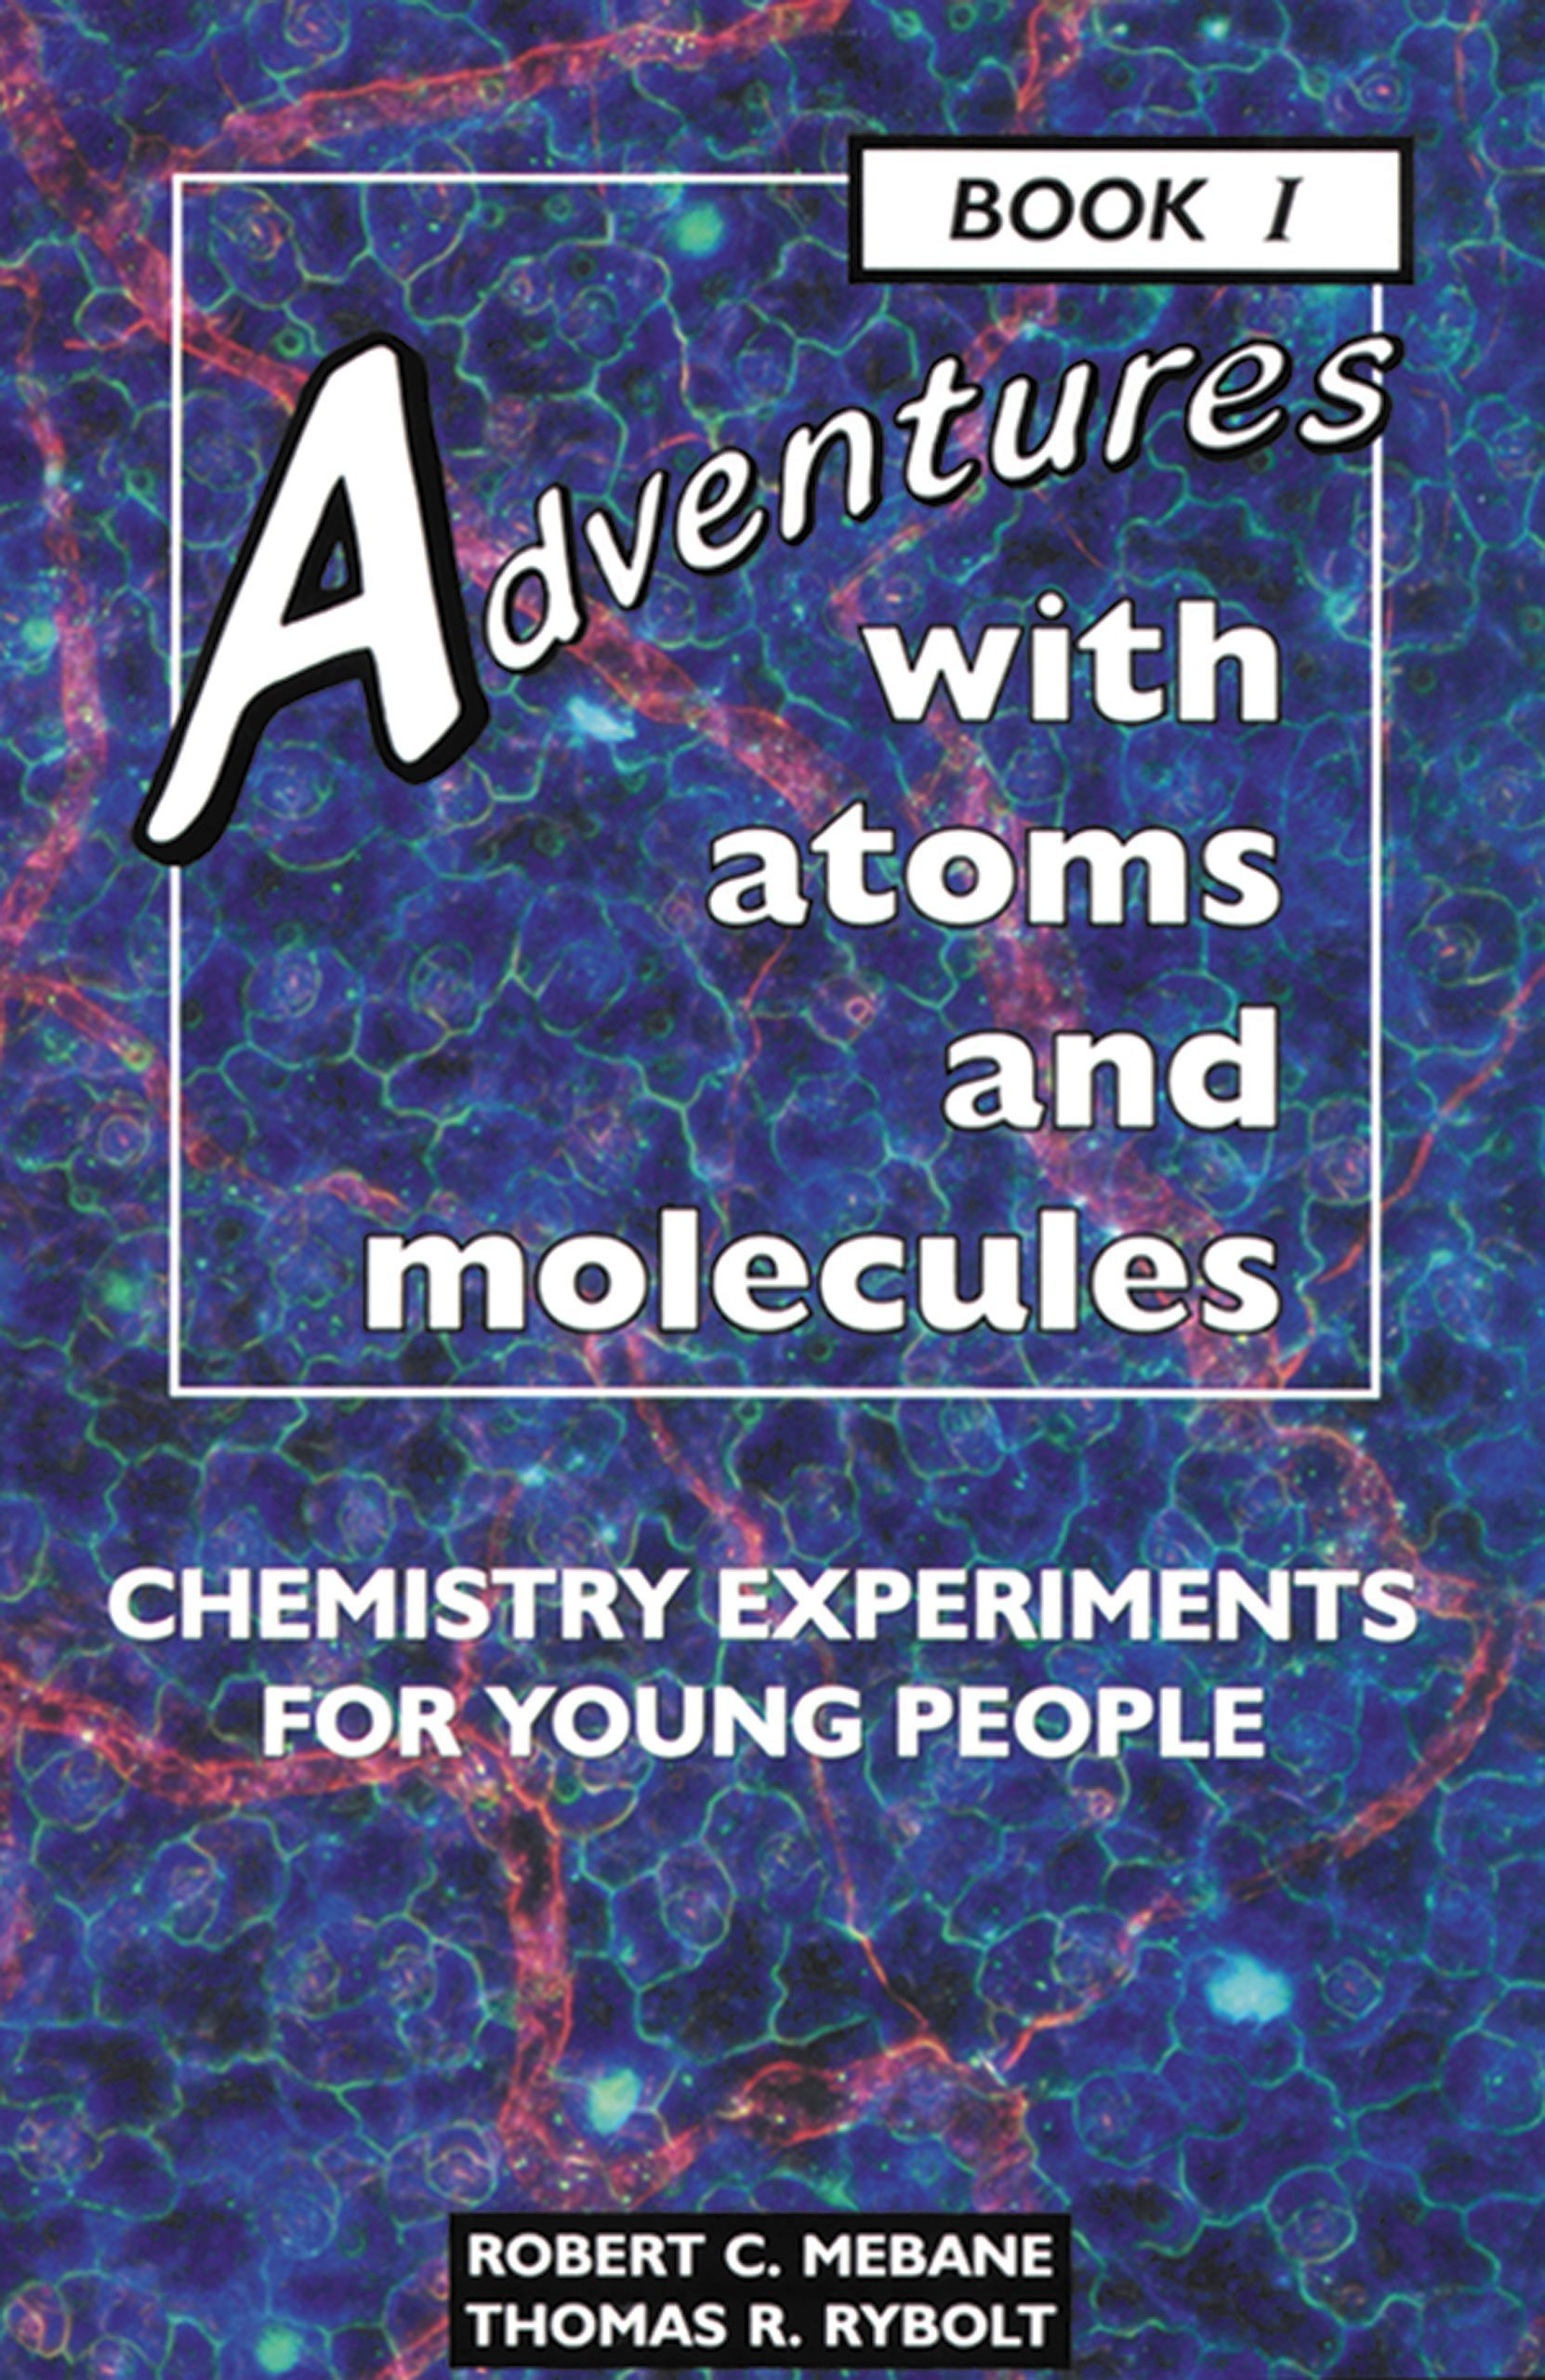 com adventures atoms and molecules chemistry  com adventures atoms and molecules chemistry experiments for young people book i adventures science 9780766012240 robert c mebane